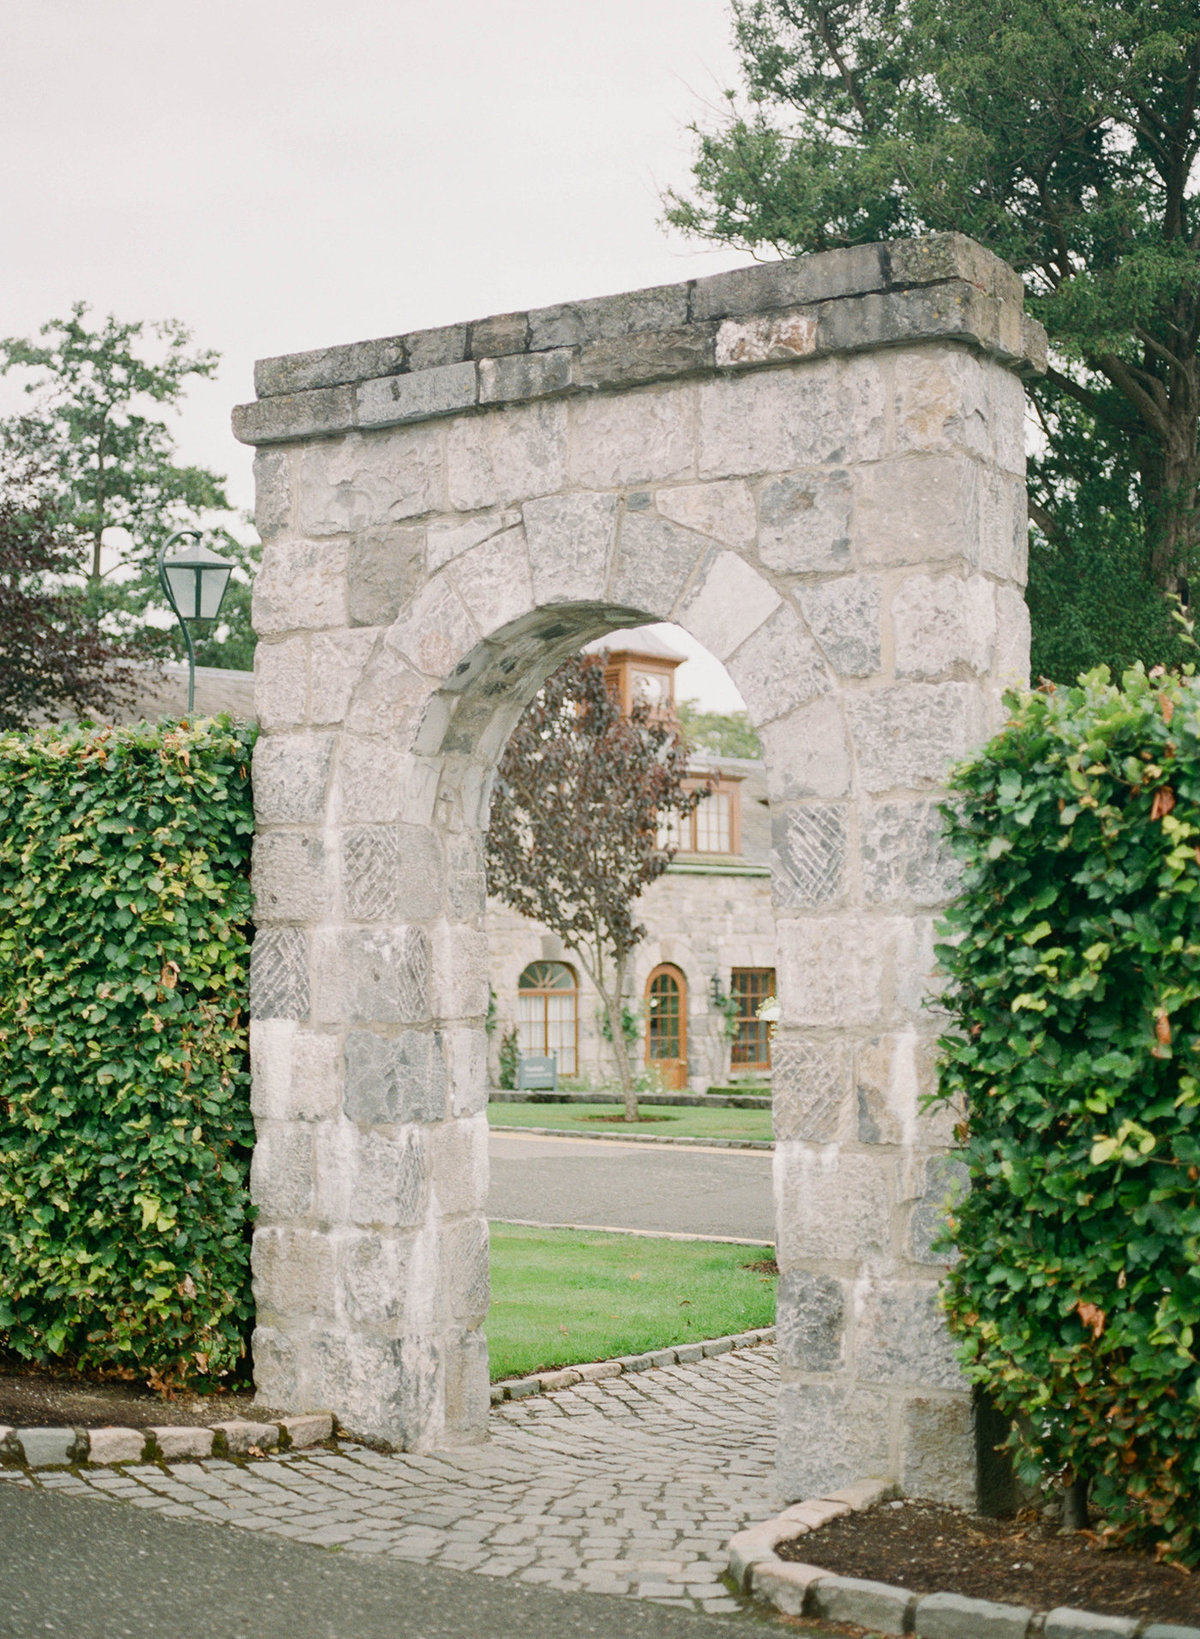 Destination Wedding Photographer - Ireland Editorial - Cliff at Lyons Kildare Ireland - Sarah Sunstrom Photography - 1